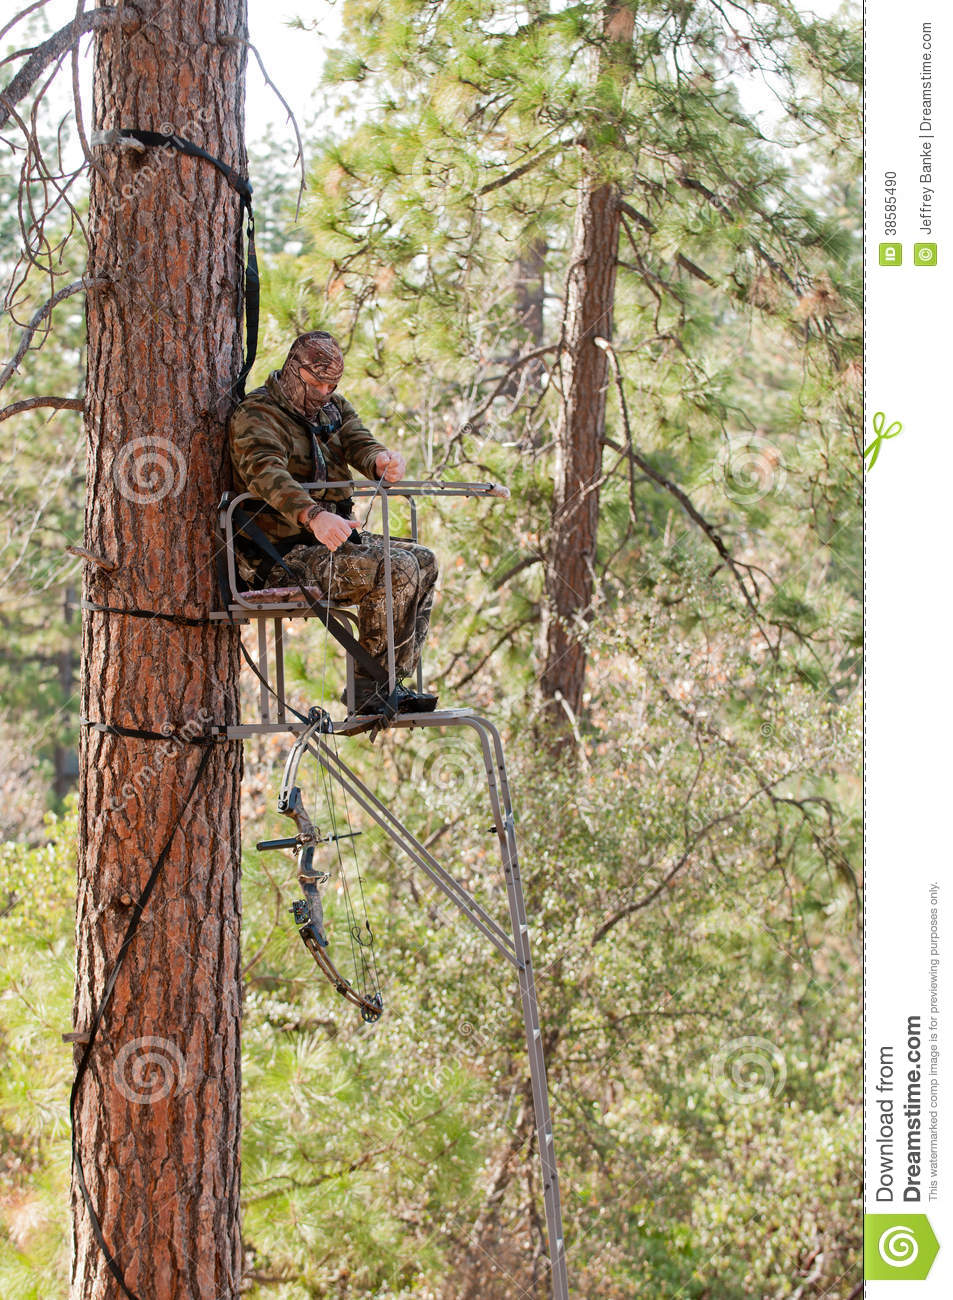 Hunting From A Tree Stand Stock Photo - Image: 38585490